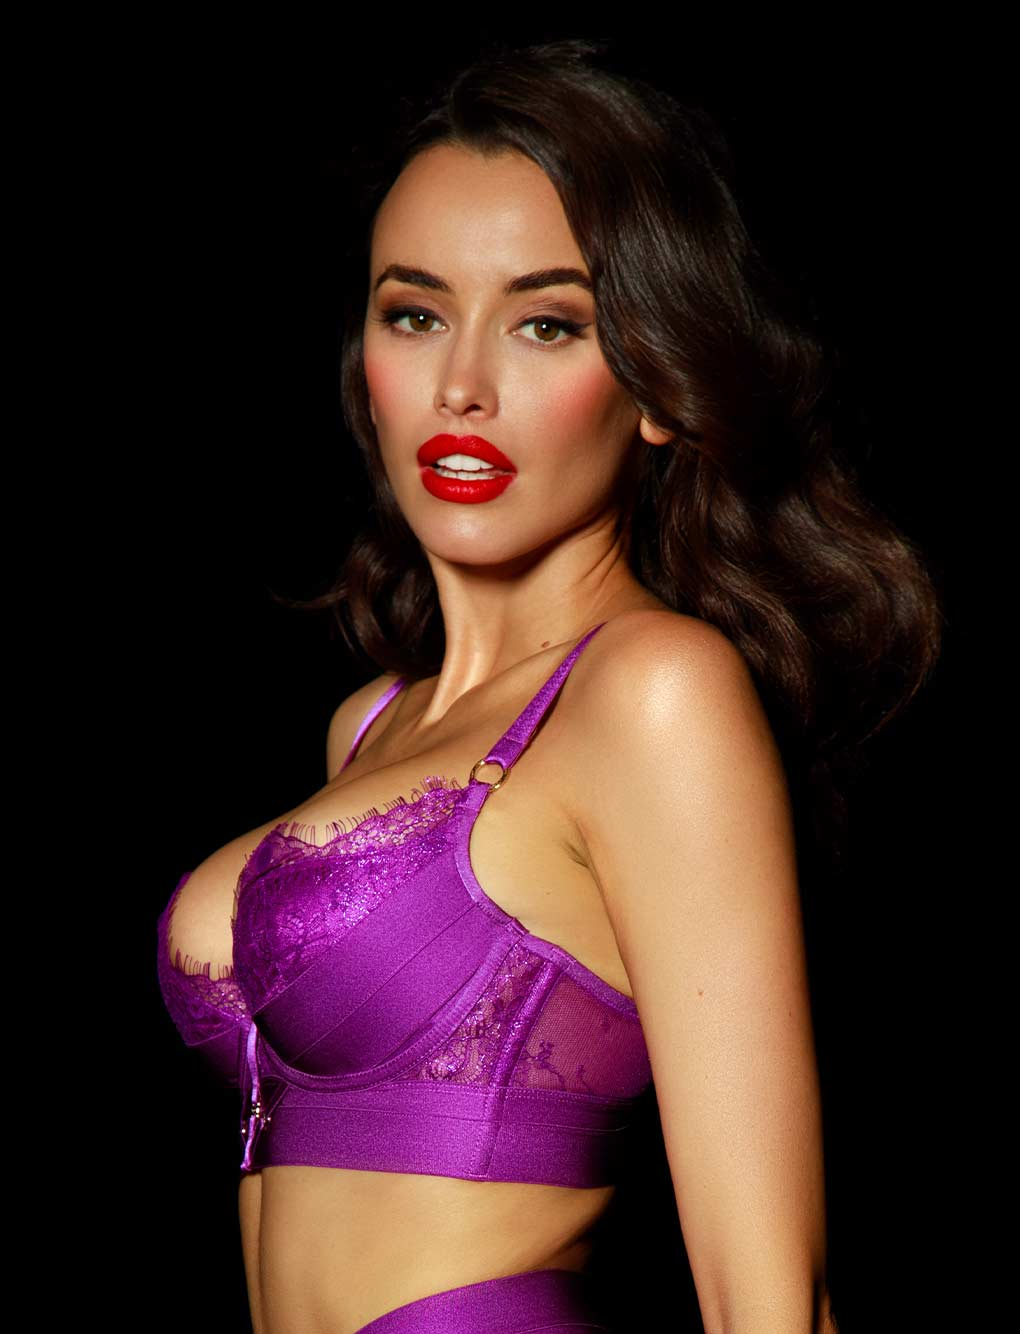 Belinda Purple Lace Push Up Bra | Shop Bras | Honey Birdette